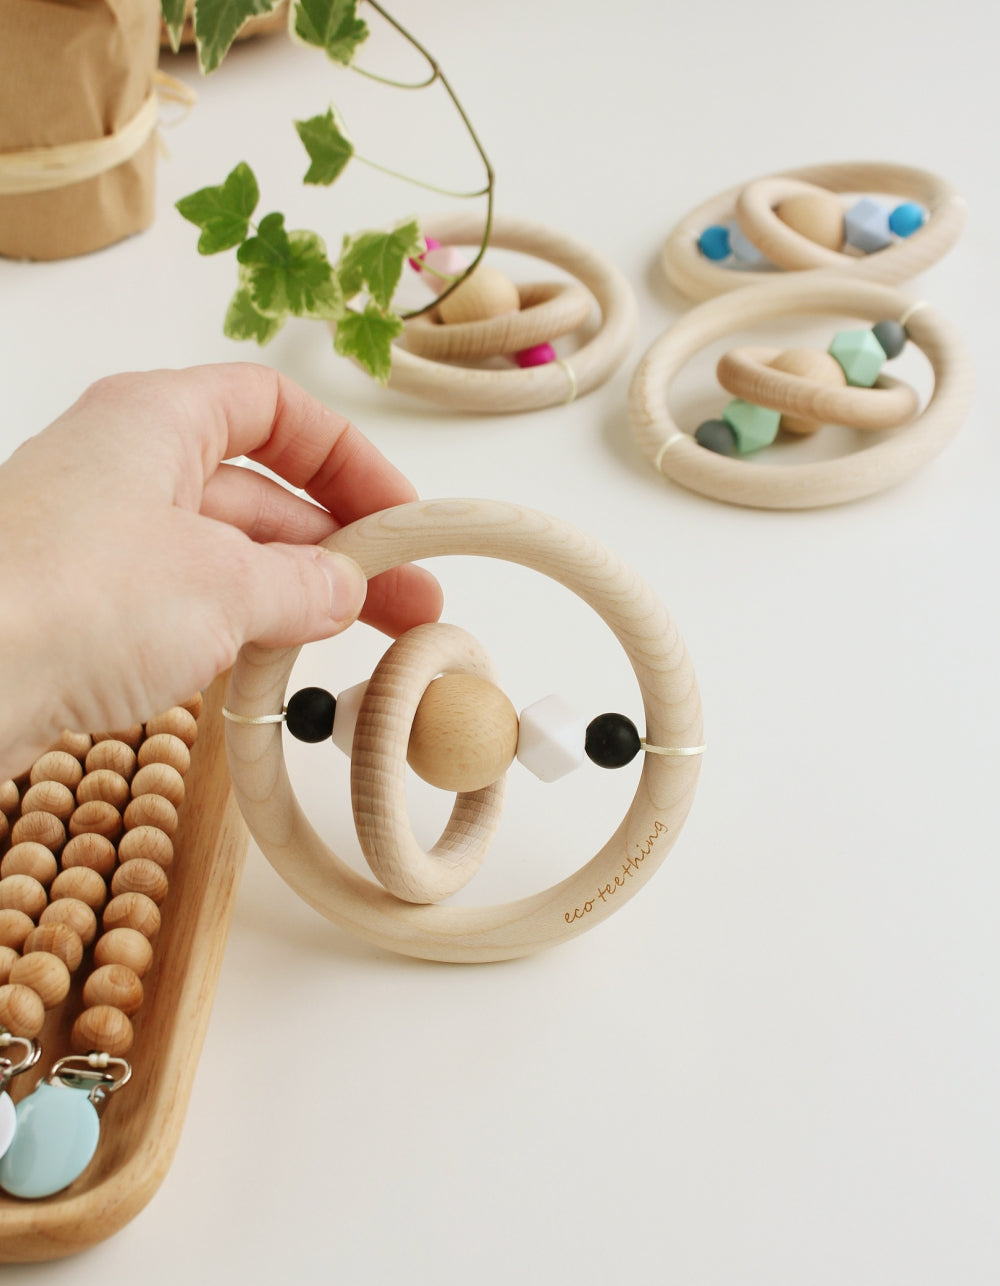 Montessori wooden teether